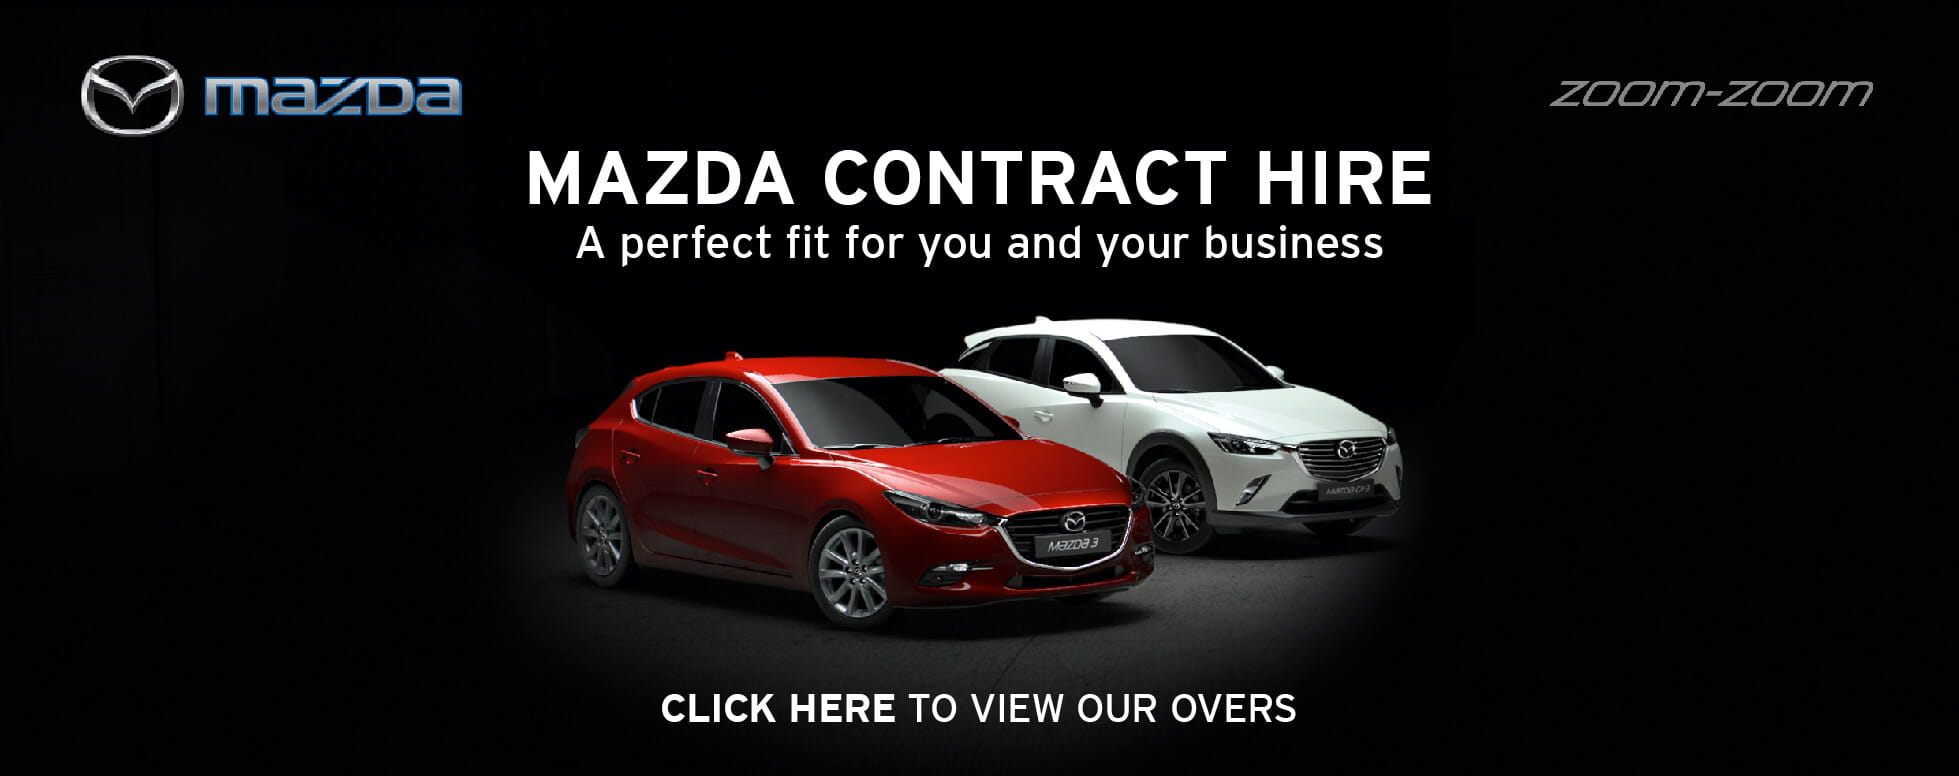 Mazda Contract Hire Offers